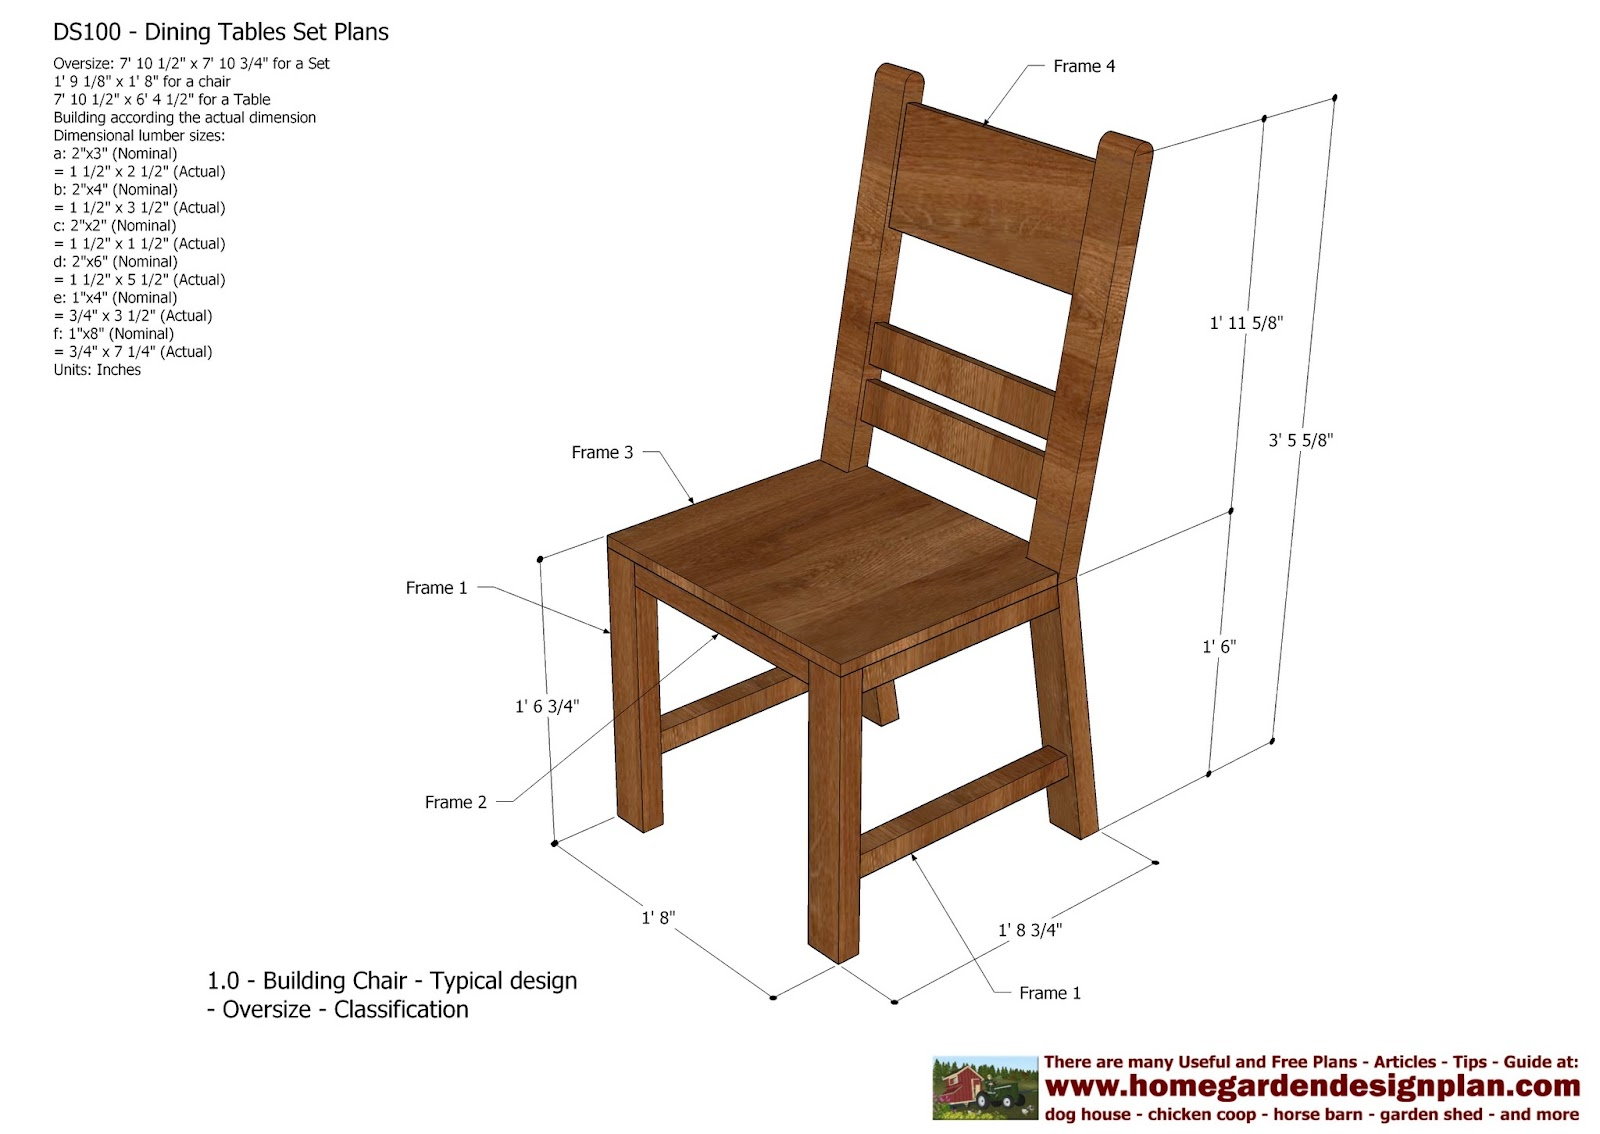 Wood Patio Chair Plans Christmas Covers Kmart Home Garden Ds100 Dining Table Set